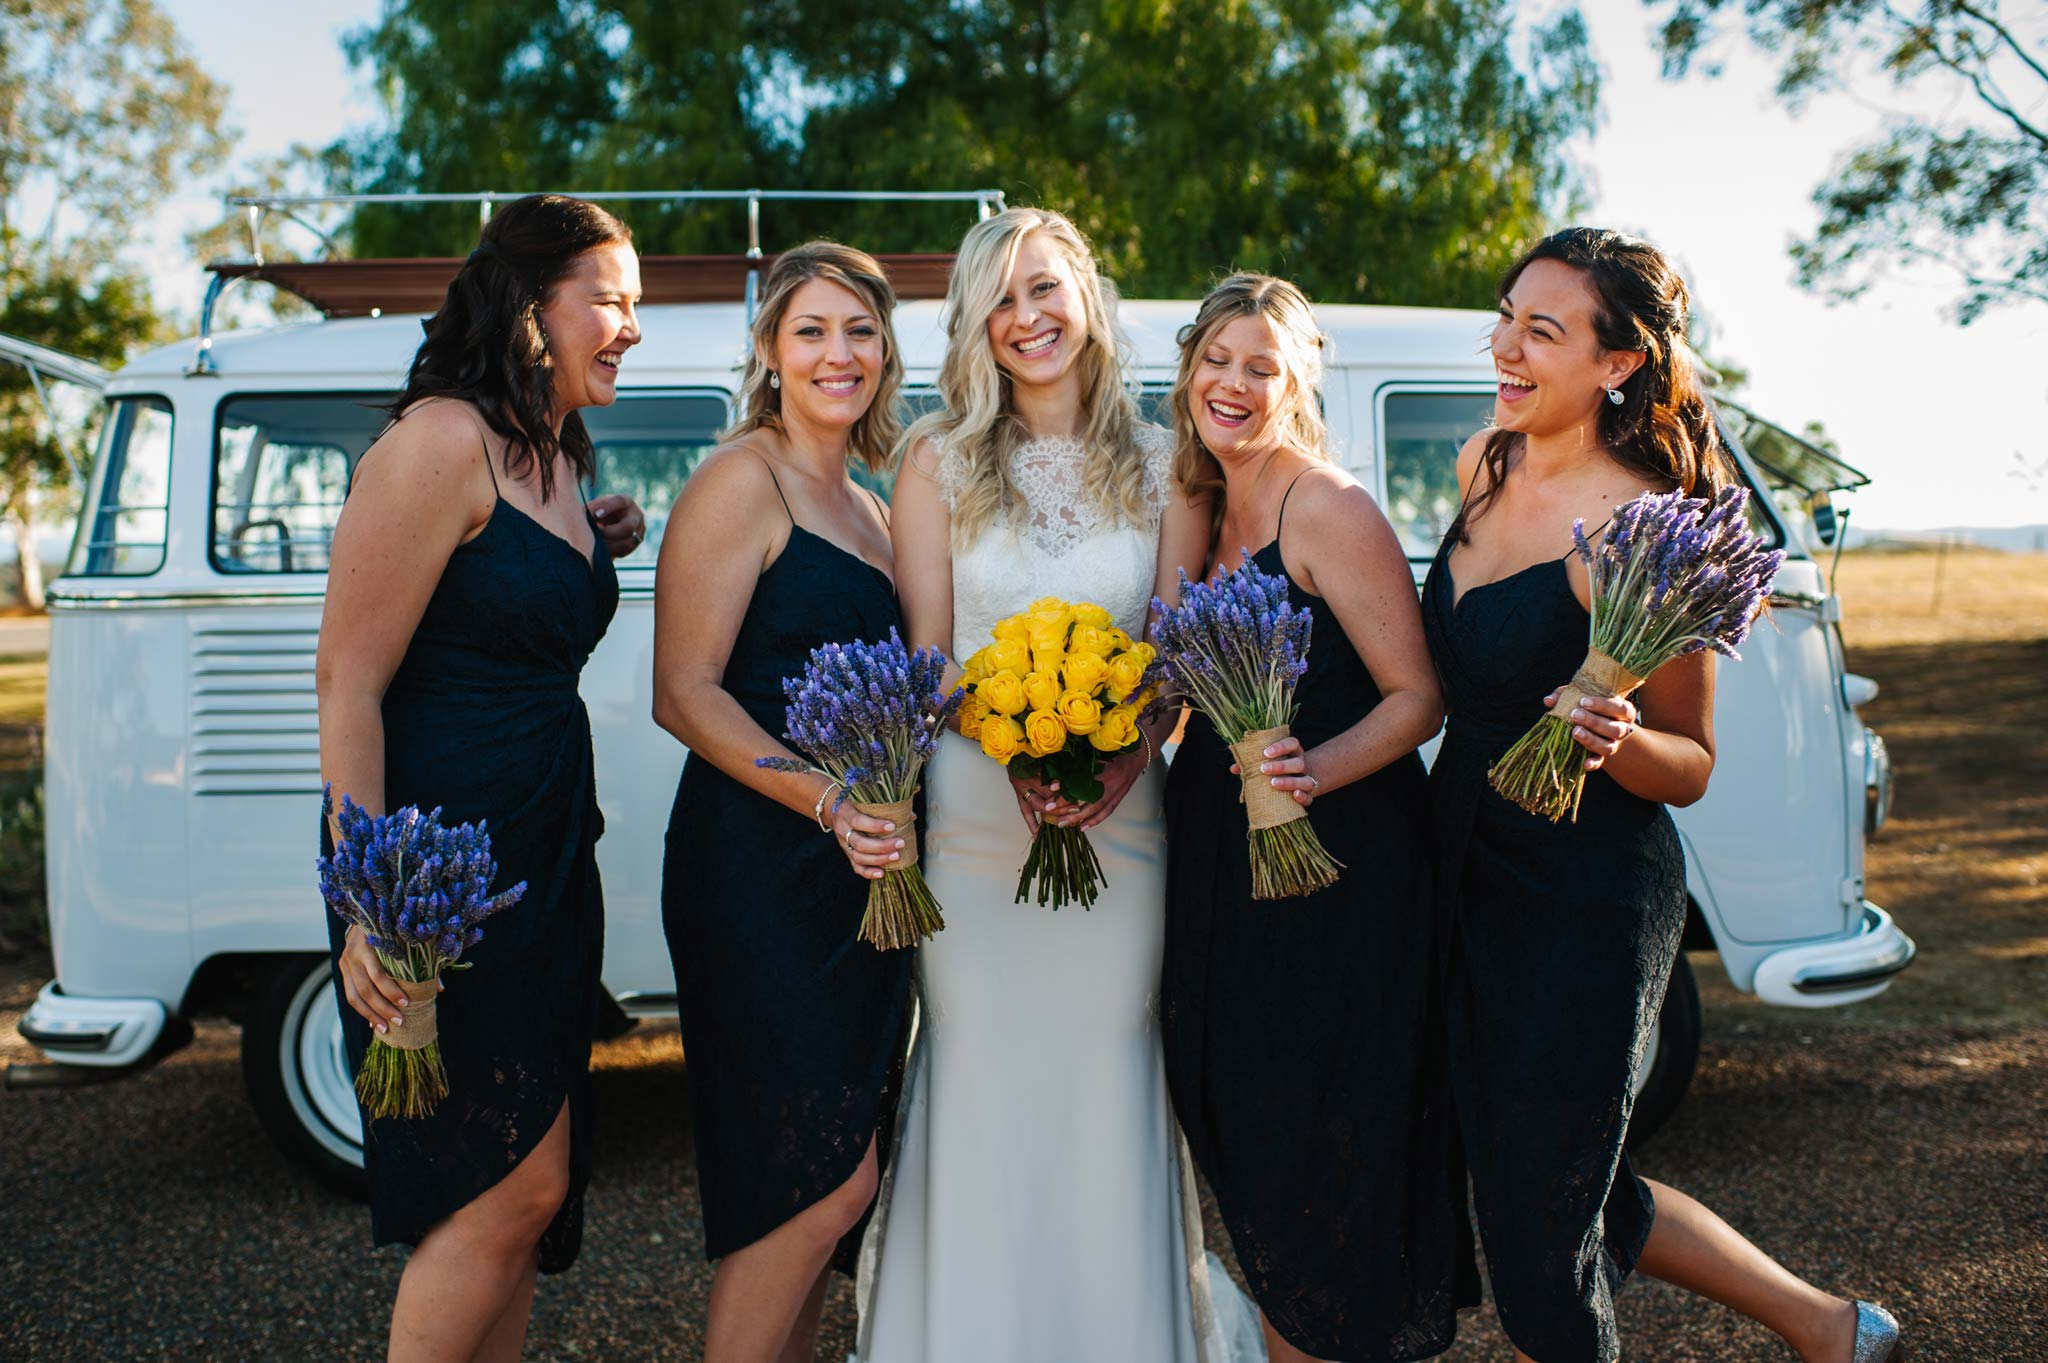 Bridesmaid and brides standing in front of a combi van